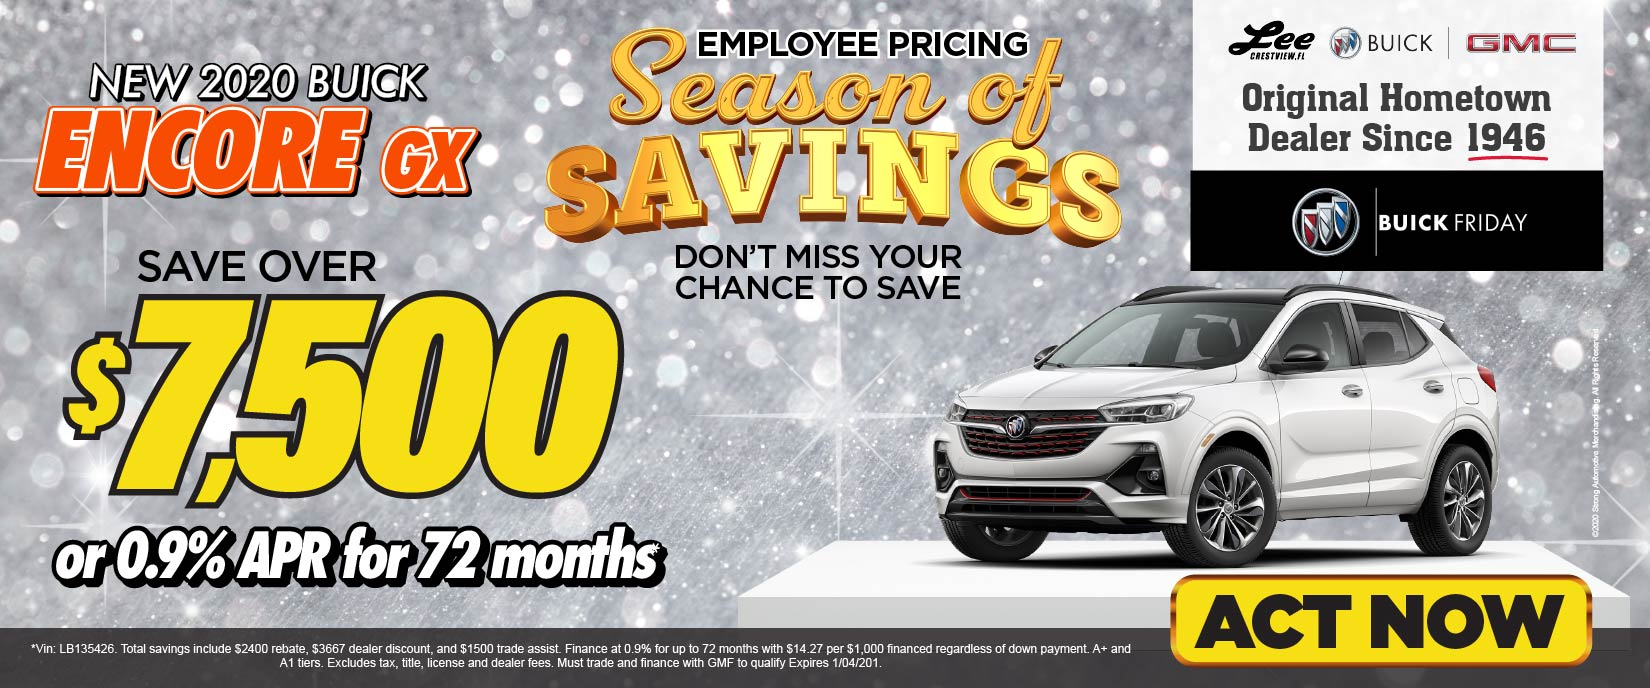 2019 GMC Yukon XL save over $15,000 Employee Pricing For Everyone | Act Now